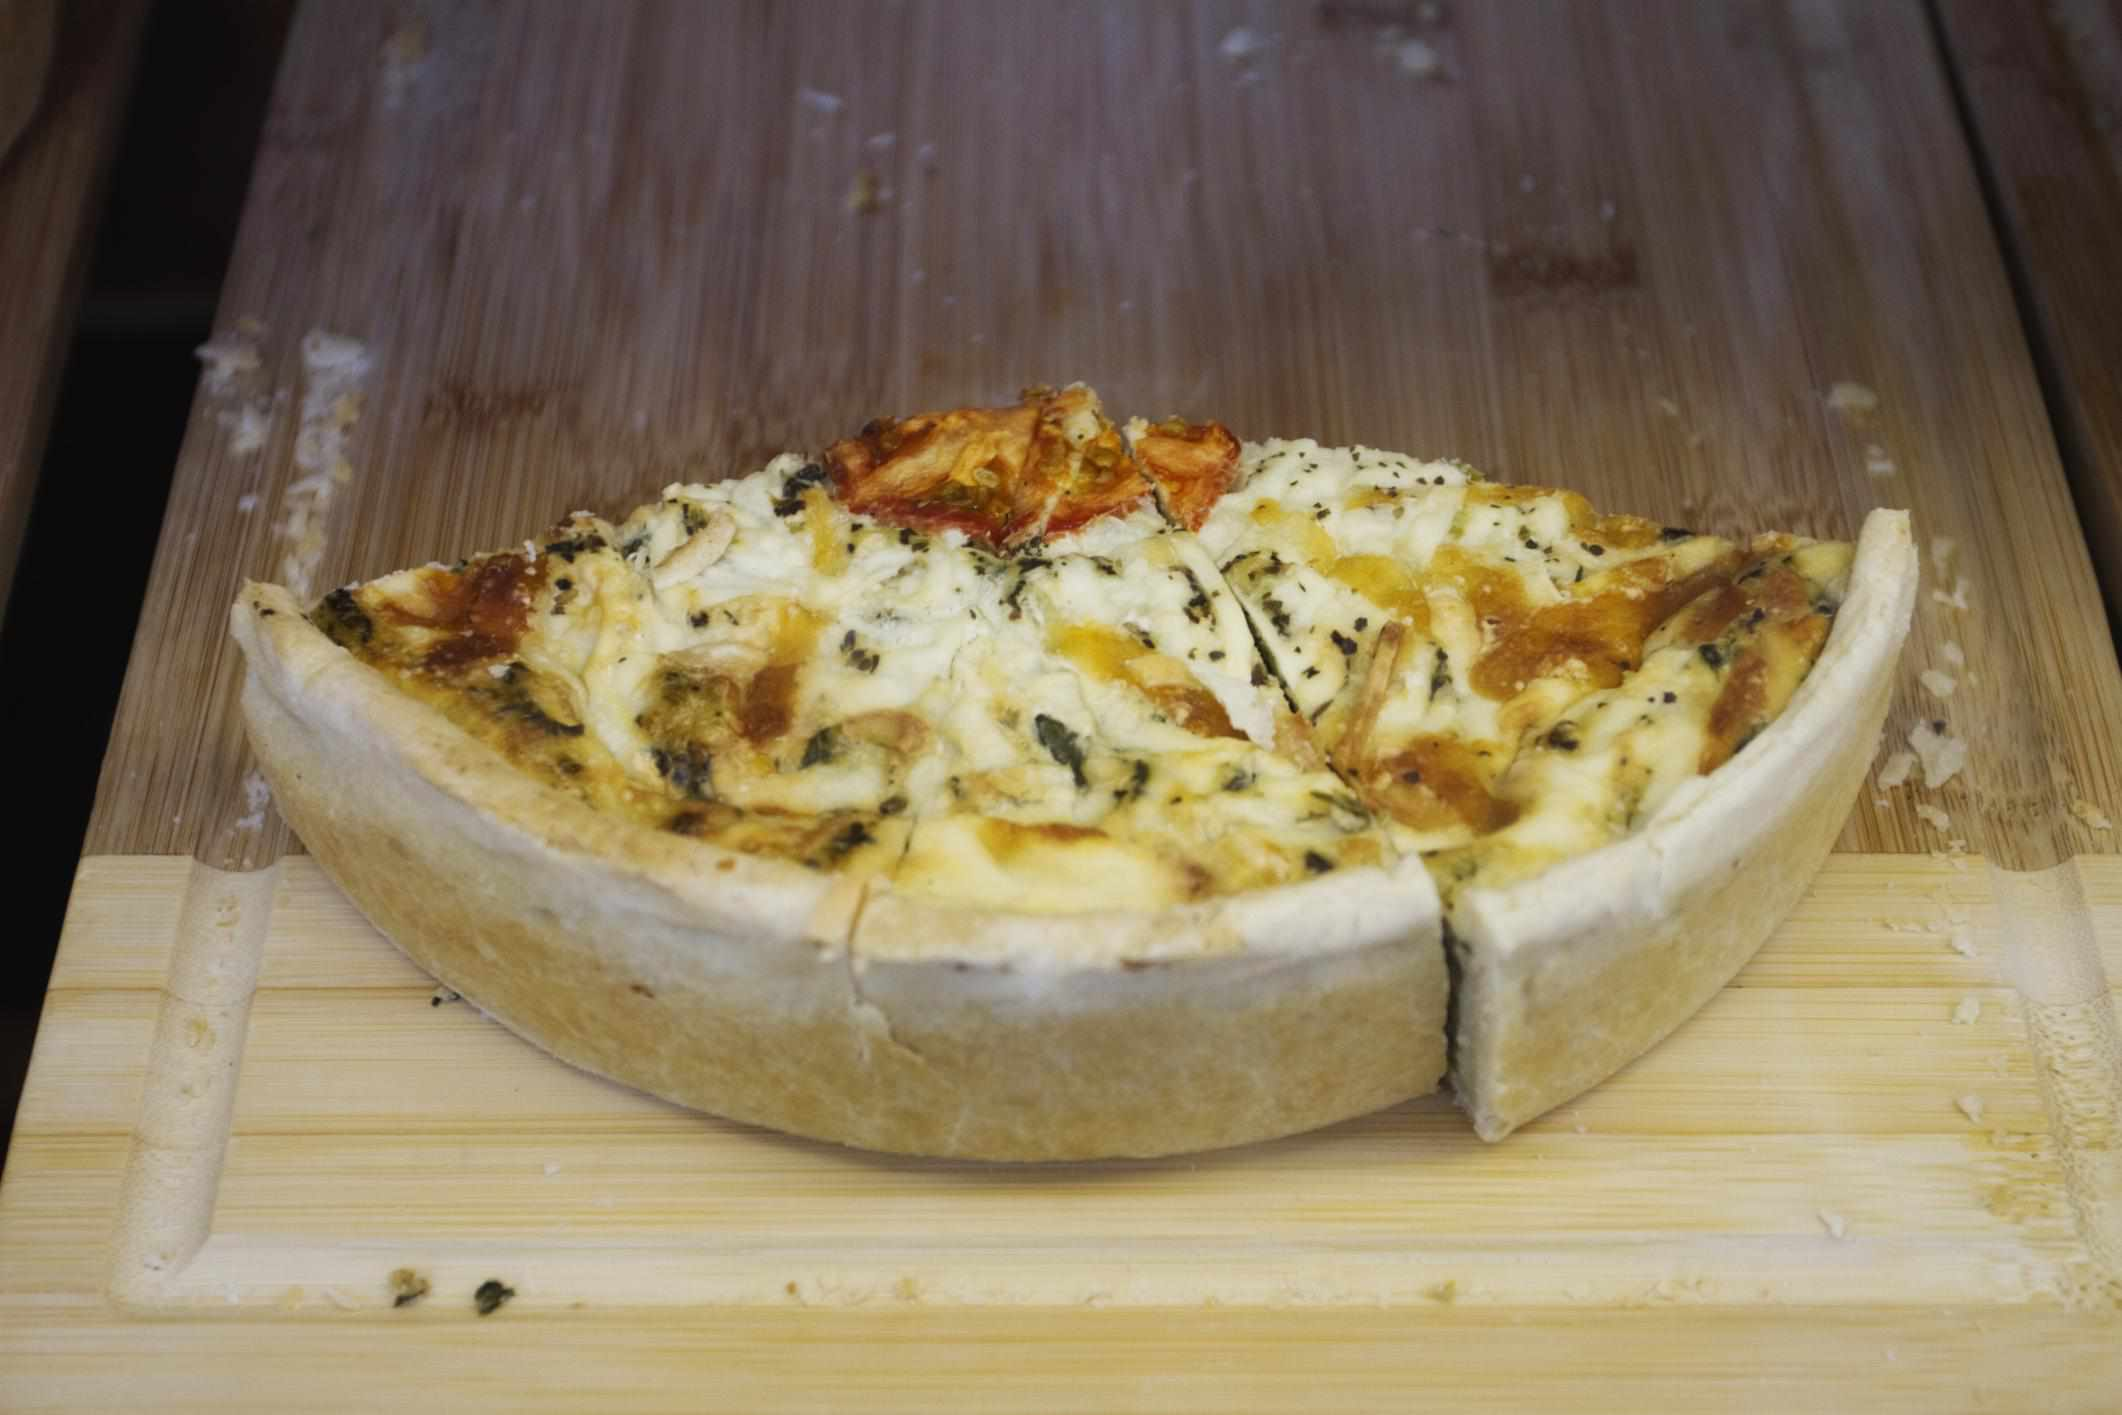 Spinach Quiche on wooden board